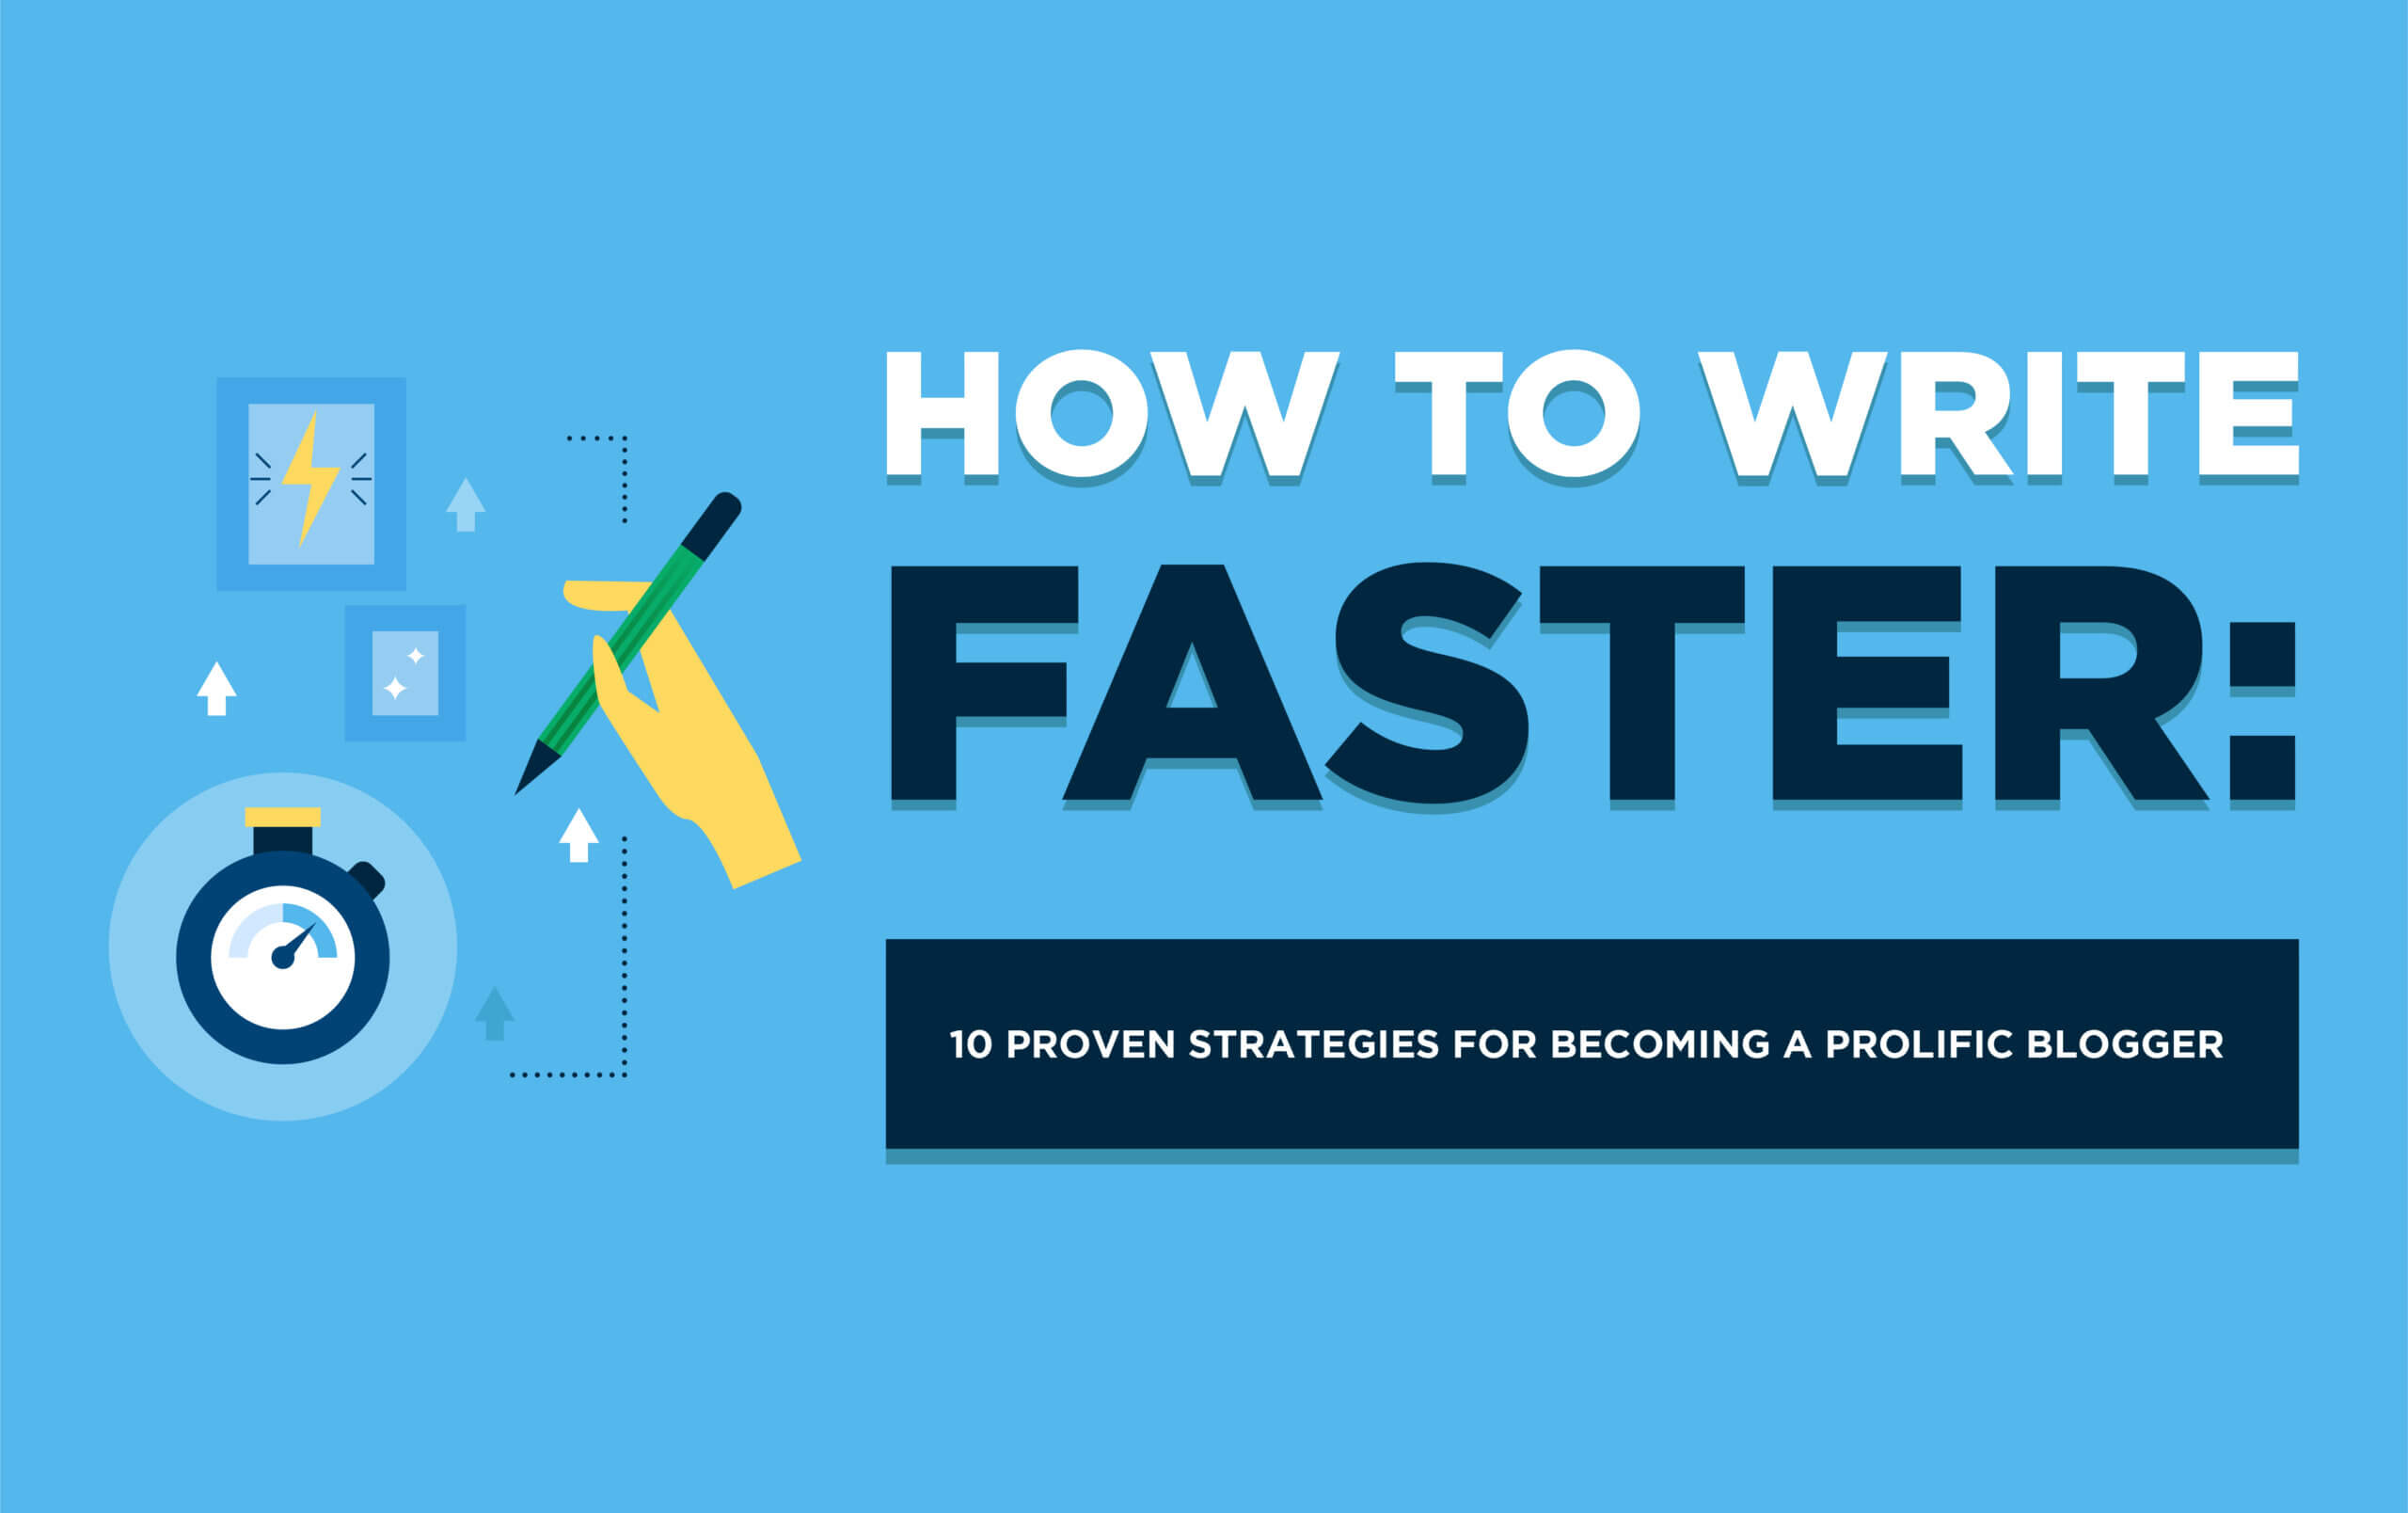 How to Write Faster (10 Tips to Get Over Writer's Block) and Be a Prolific Blogger